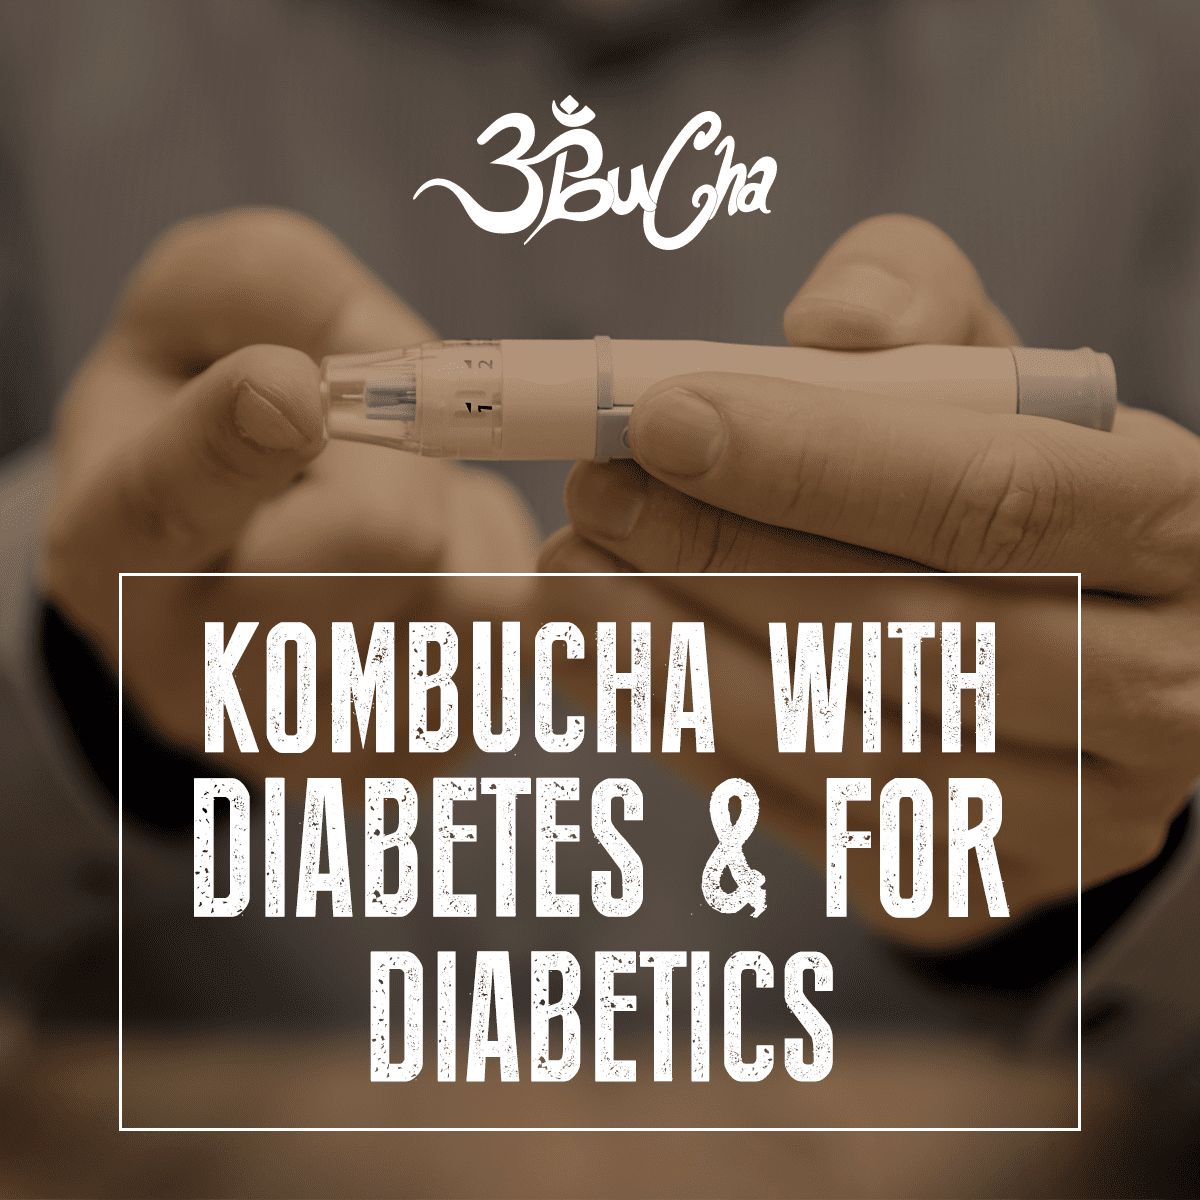 Kombucha with diabetes and for diabetics